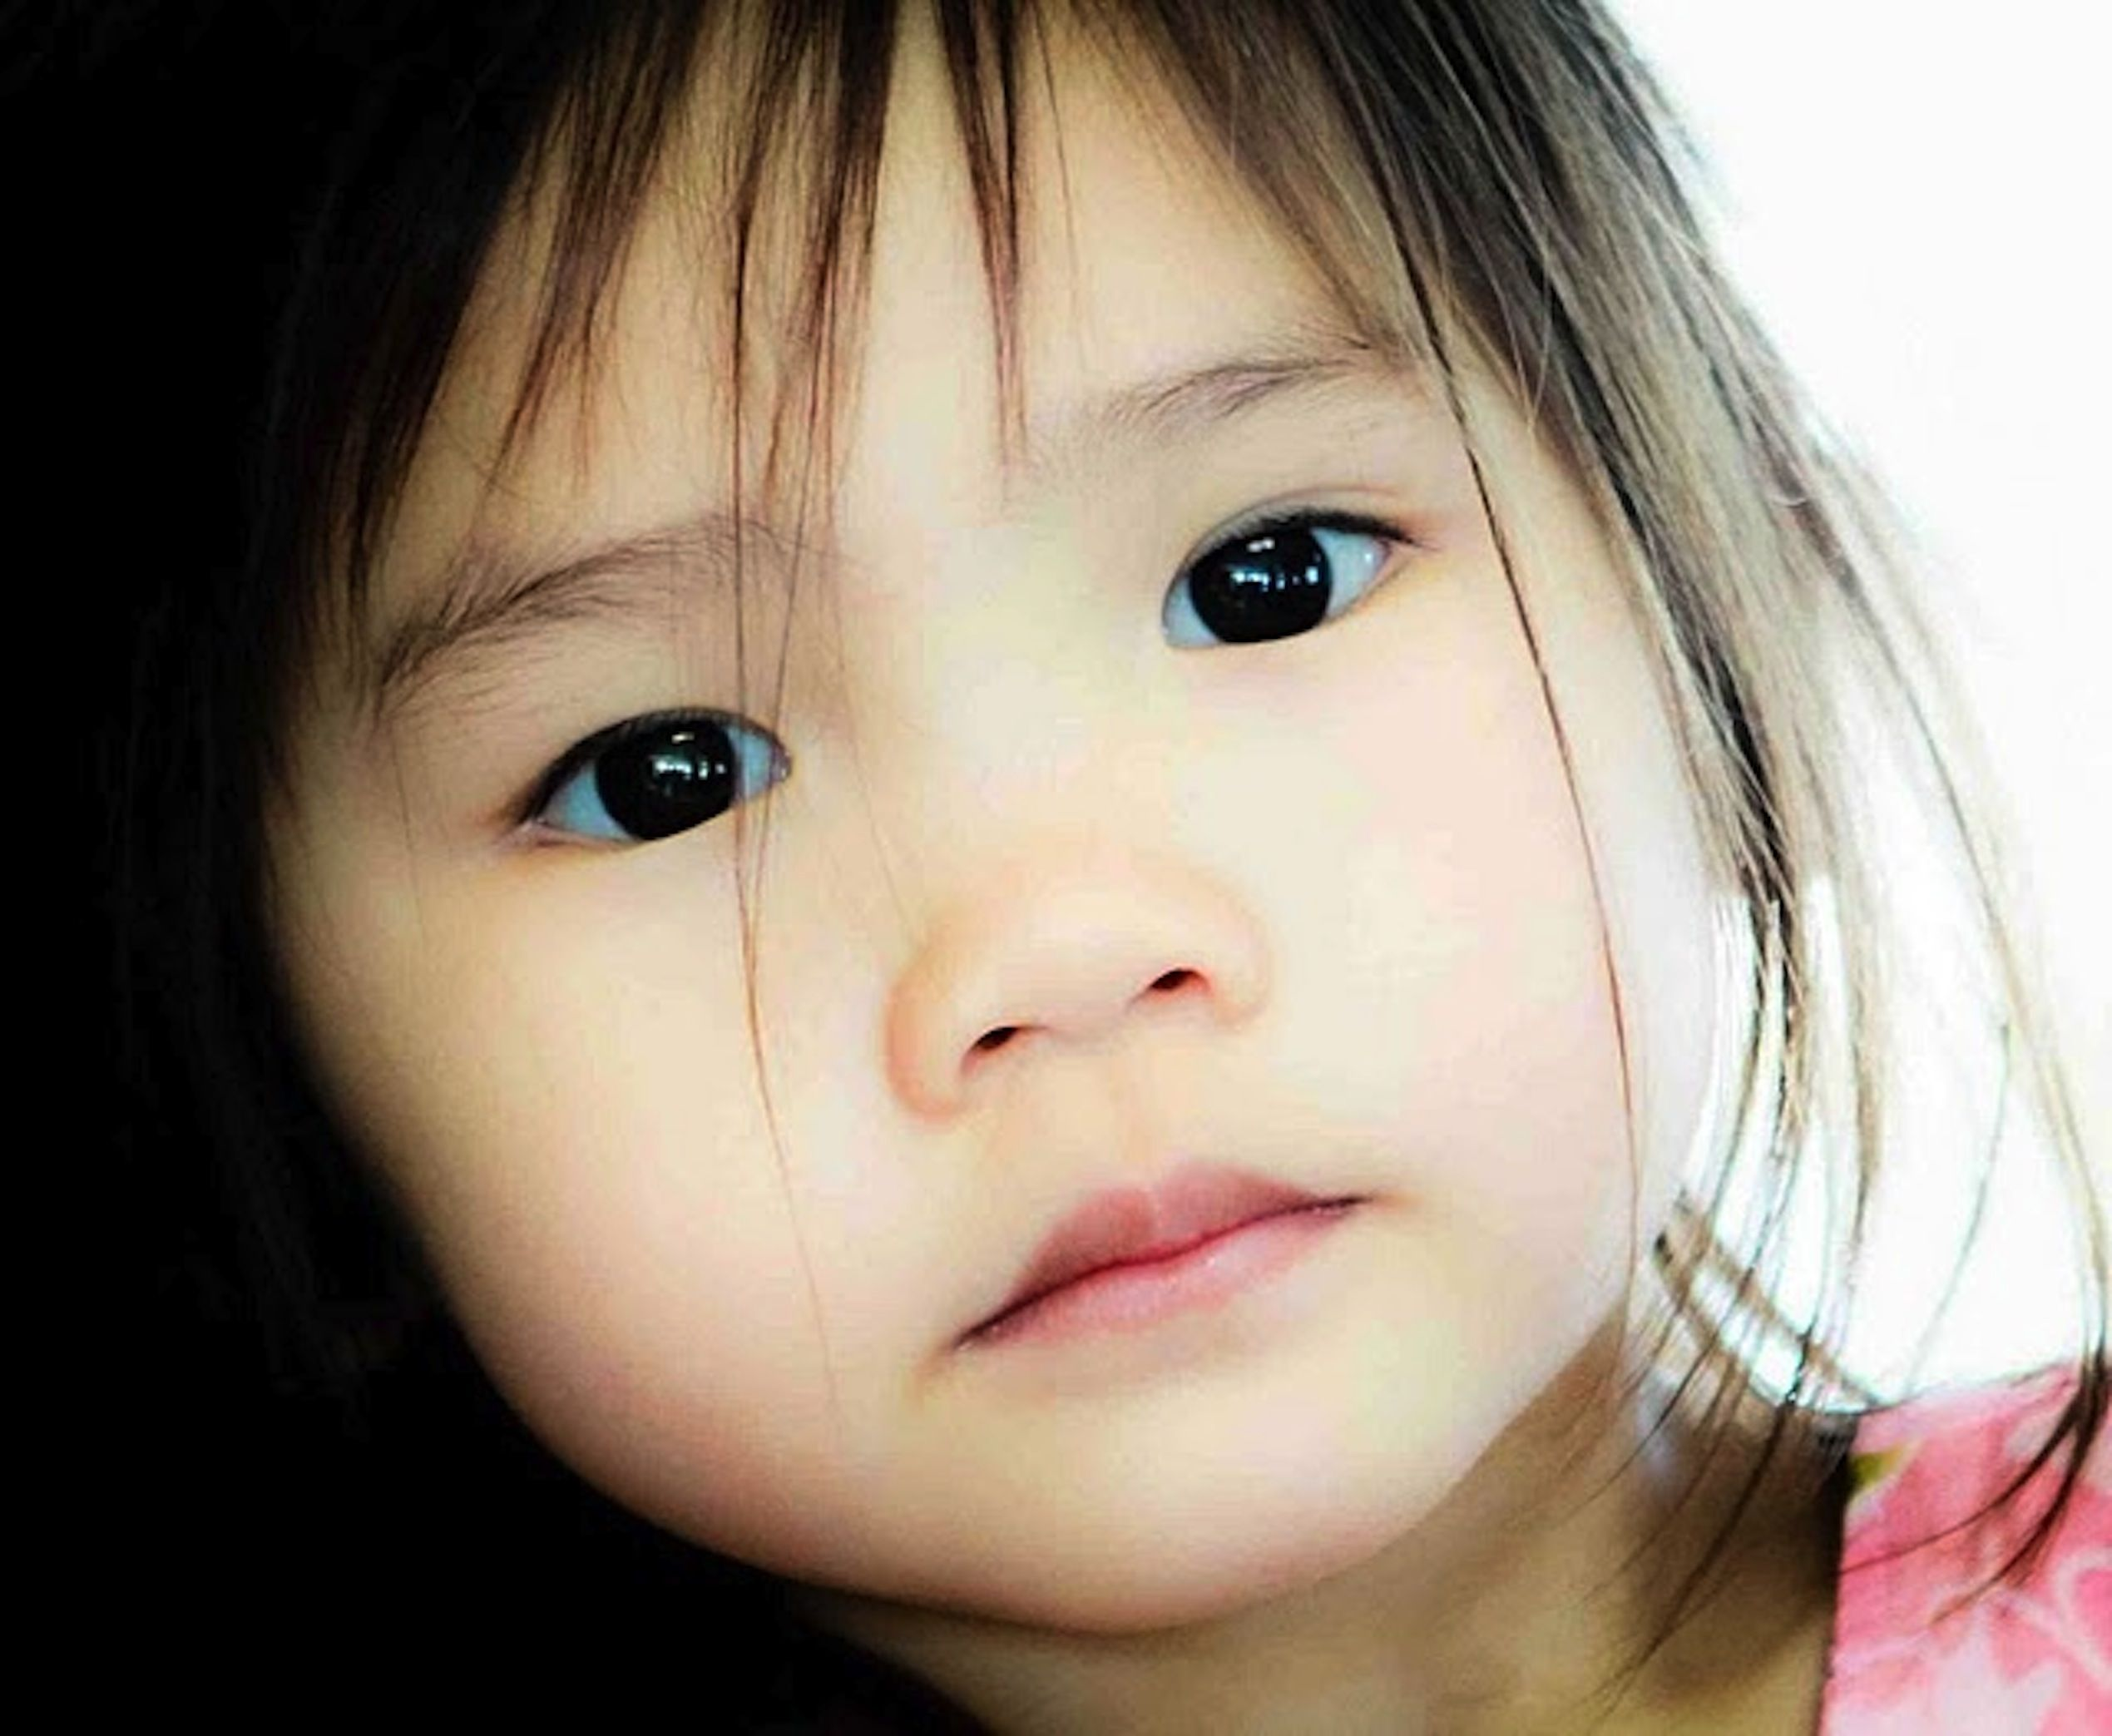 What An Delightful Chinese Face  Faces 2 - All Stunning -4412